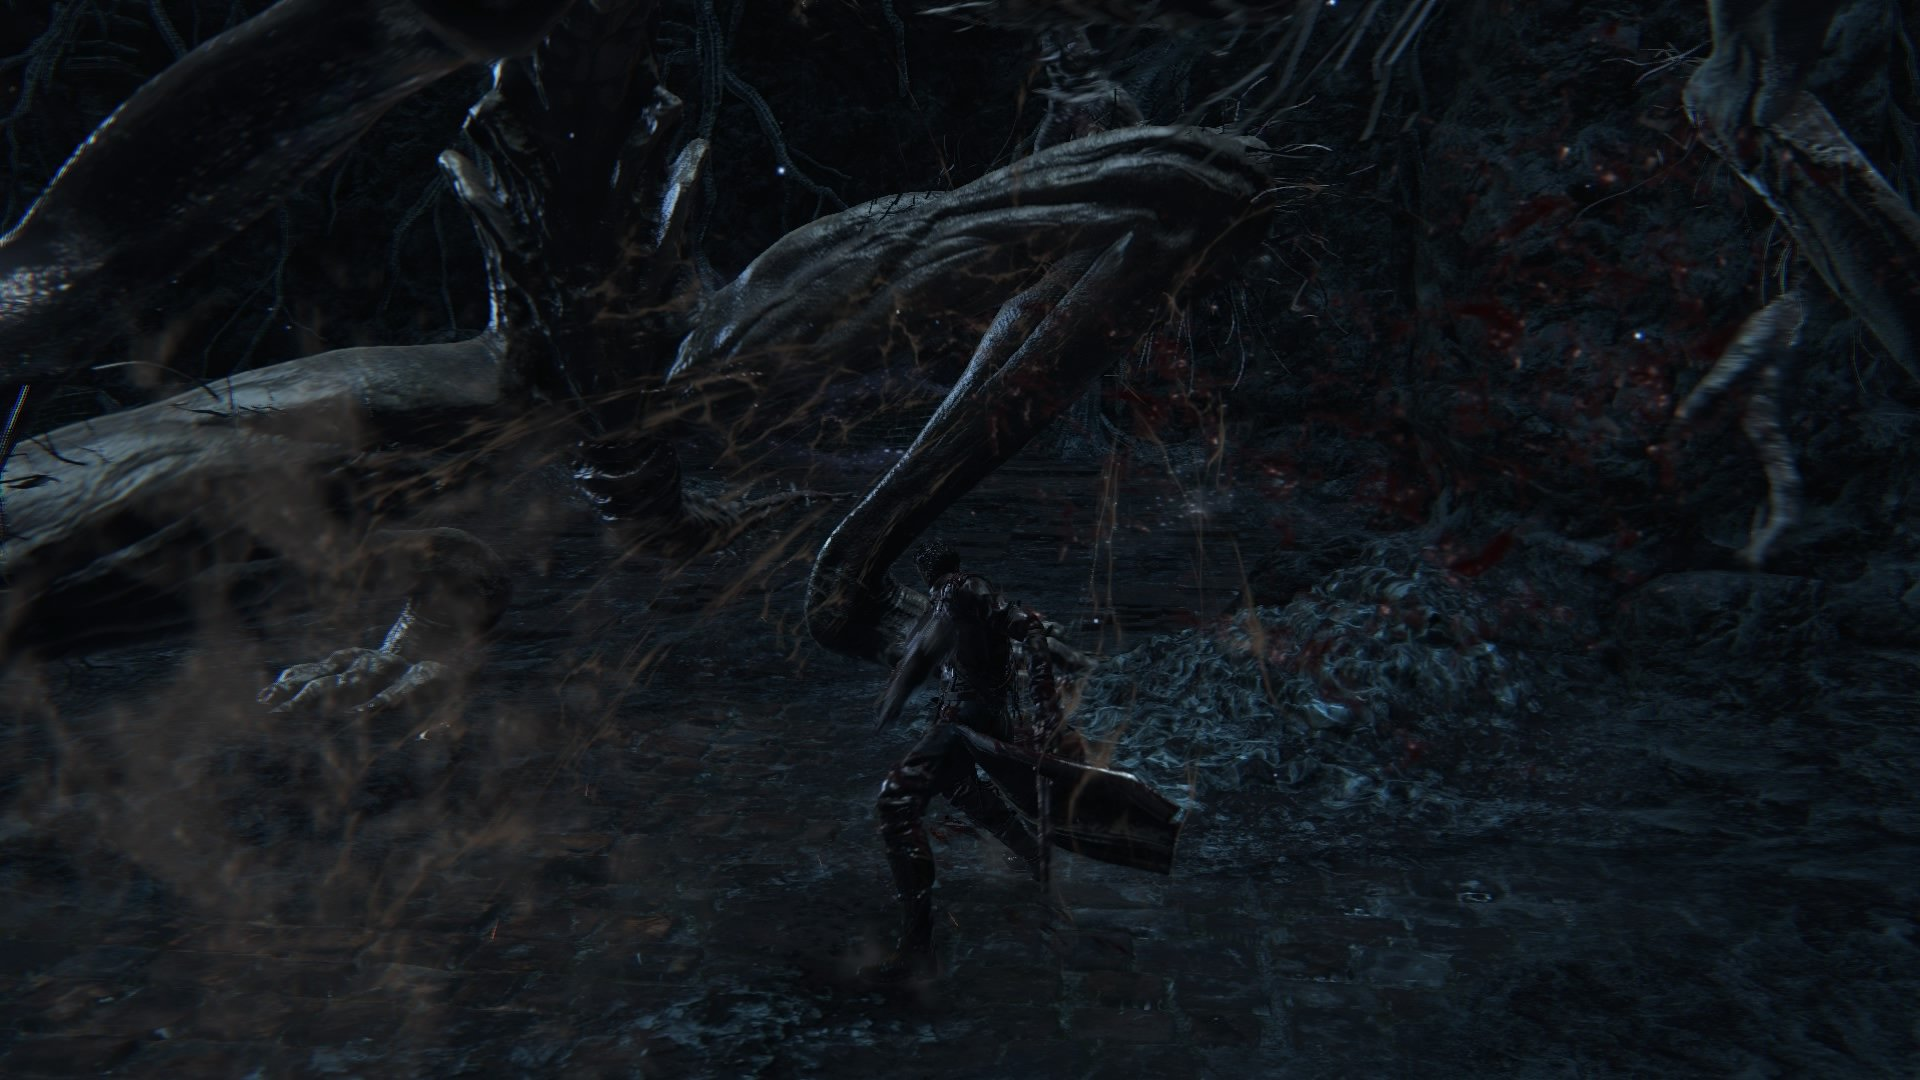 Blood, Amygdala's Leg, After Break, Isz